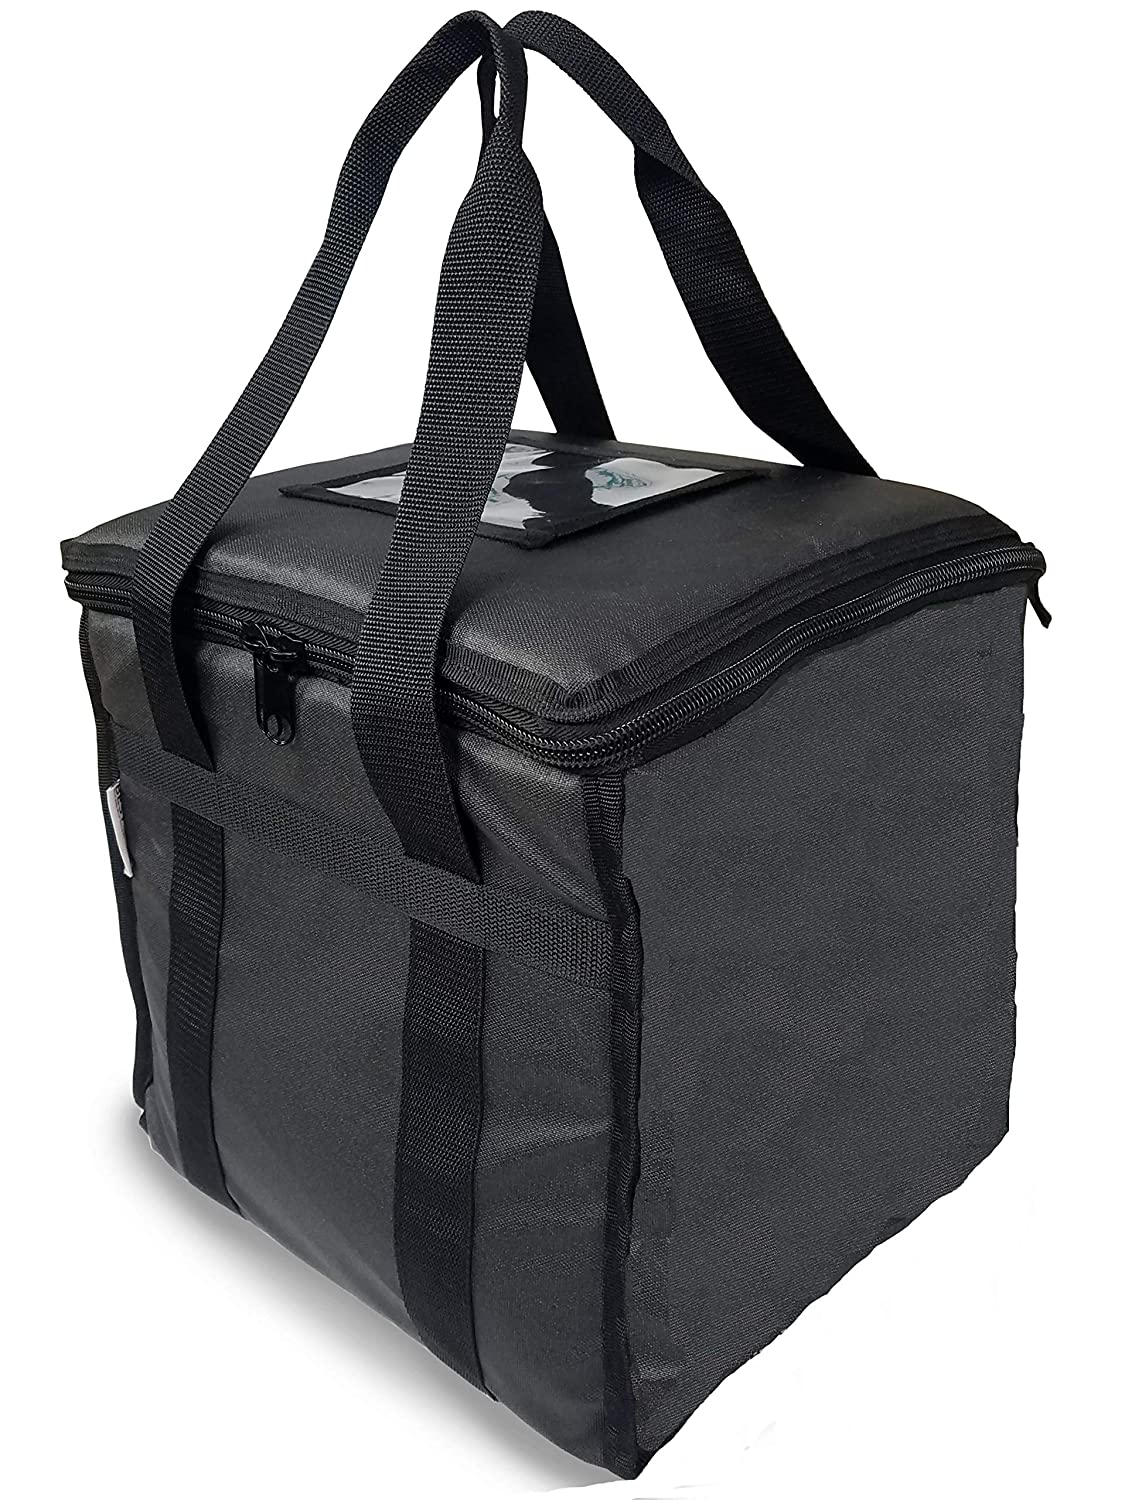 Limited price sale Insulated Food Delivery Bag Catering DOORDASH UBER Ranking TOP7 GRABHUB